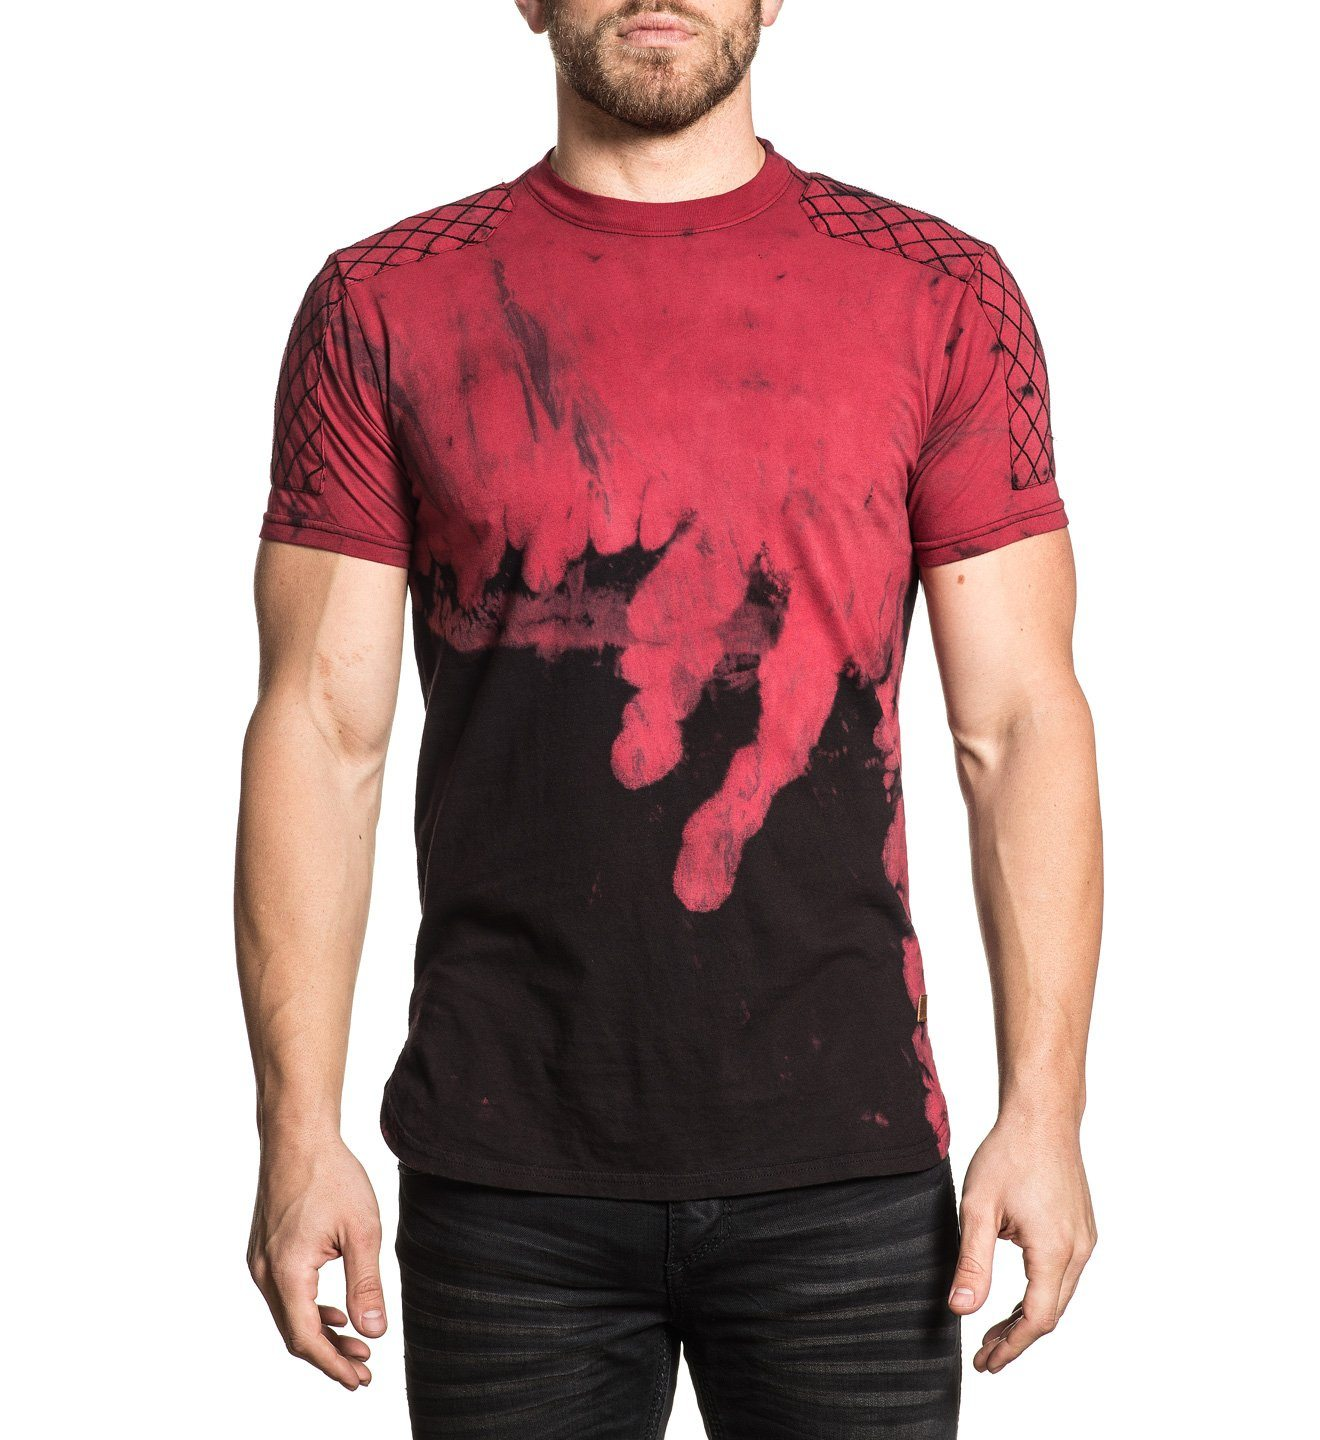 Standard Supply M-083 - Mens Short Sleeve Tees - Affliction Clothing